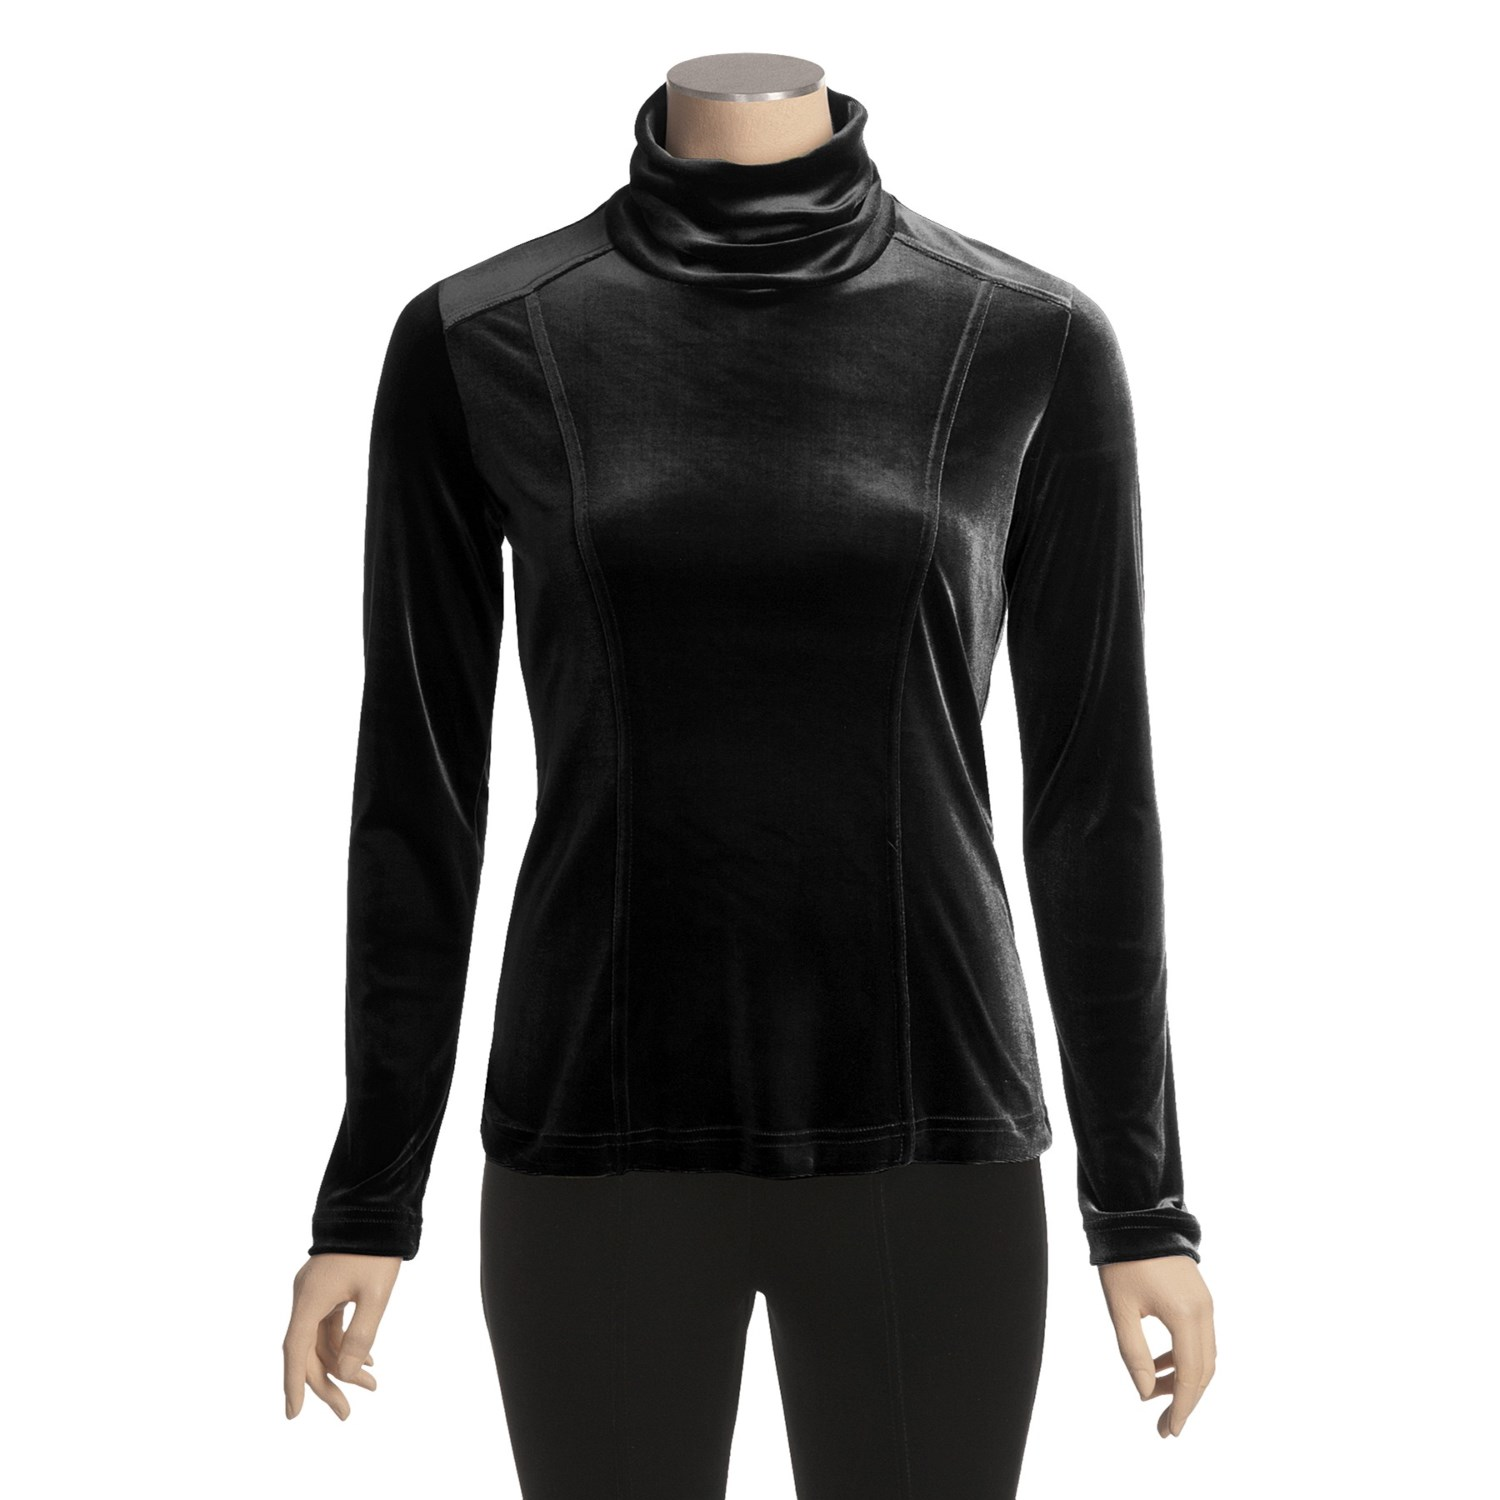 Sno skins womens clothing. Clothing stores